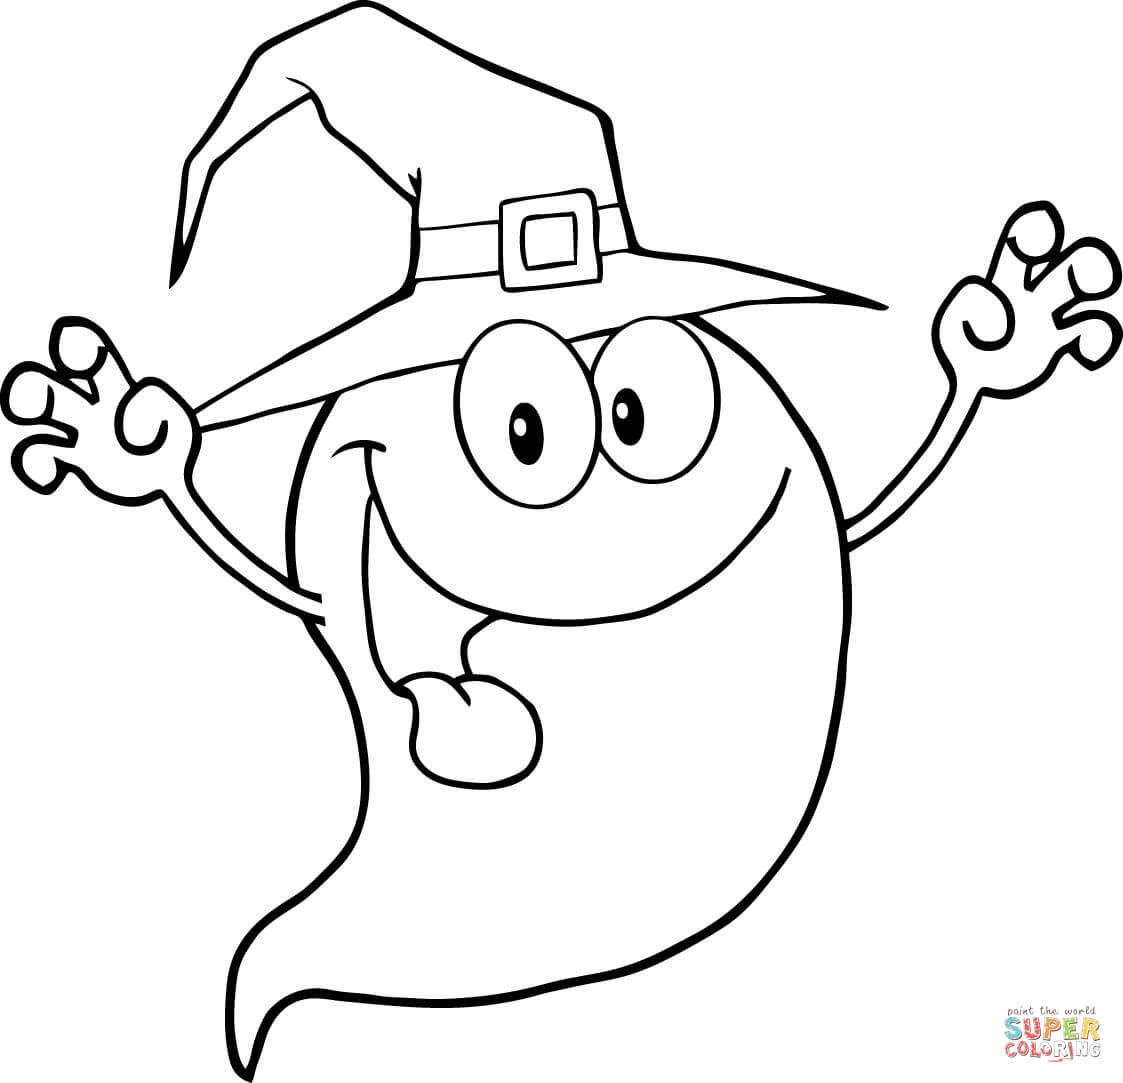 Scary Ghost Drawing at GetDrawings | Free download